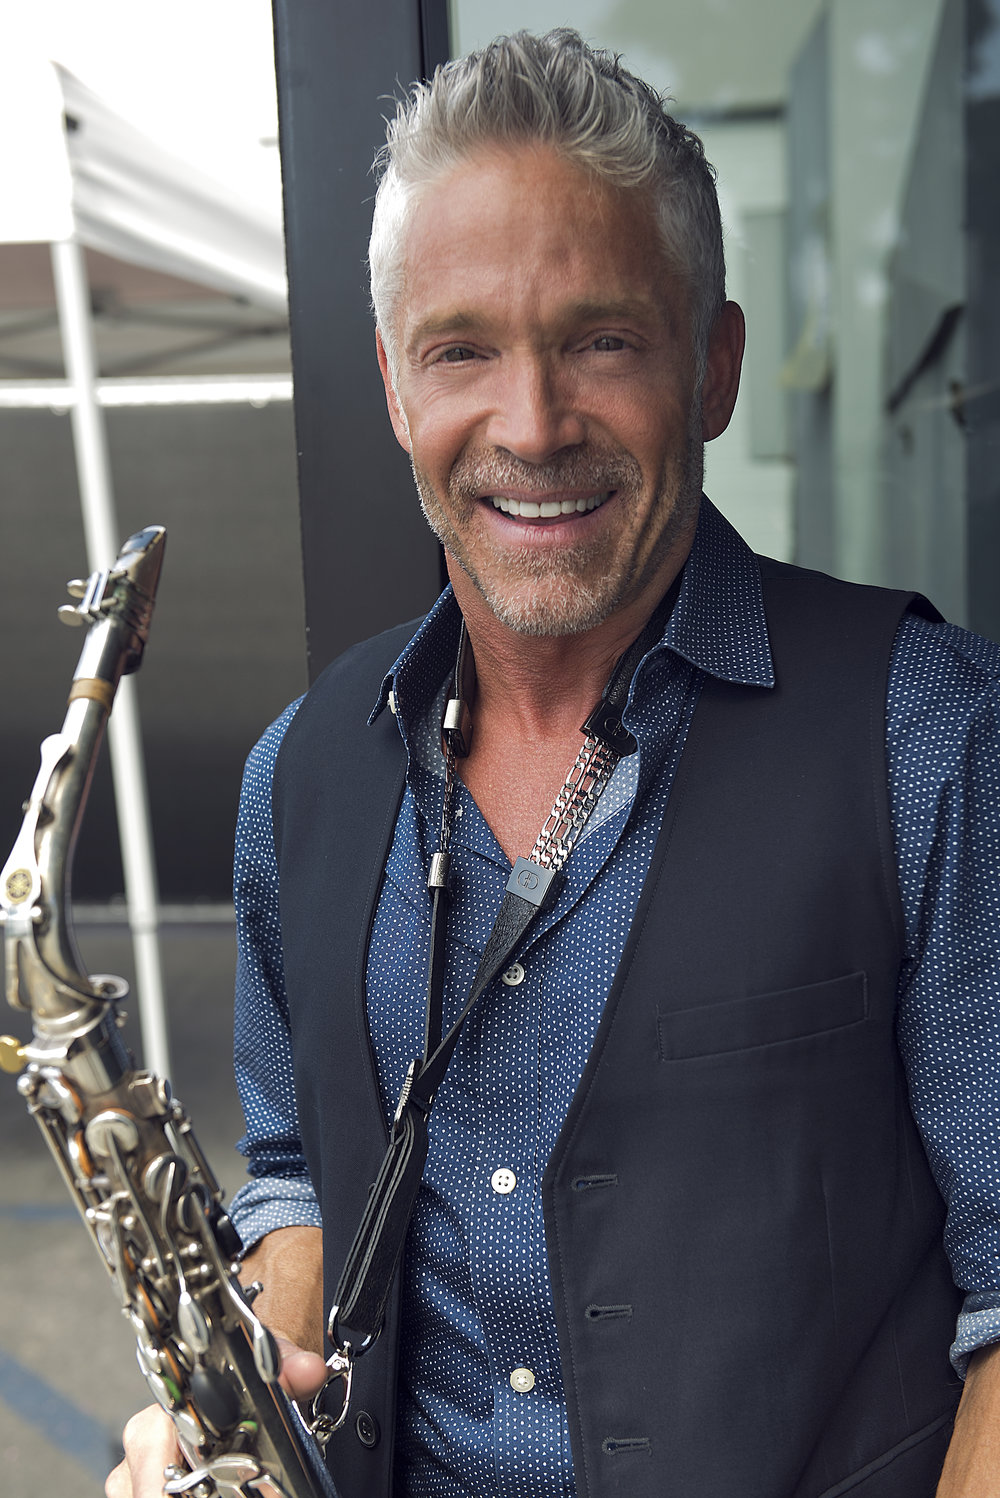 Dave Koz - Honored to have Saxophone Legend Dave Koz apart of our family. Dave loves the Shadow Strap.In the 25 years since the release of his self-titled solo debut album, saxophonist Dave Koz has received nine GRAMMY® nominations, had nine No. 1 albums on Billboard's Current Contemporary Jazz Albums chart, toured the world and been honored with a star on the Hollywood Walk of Fame.Check him out at DaveKoz.com